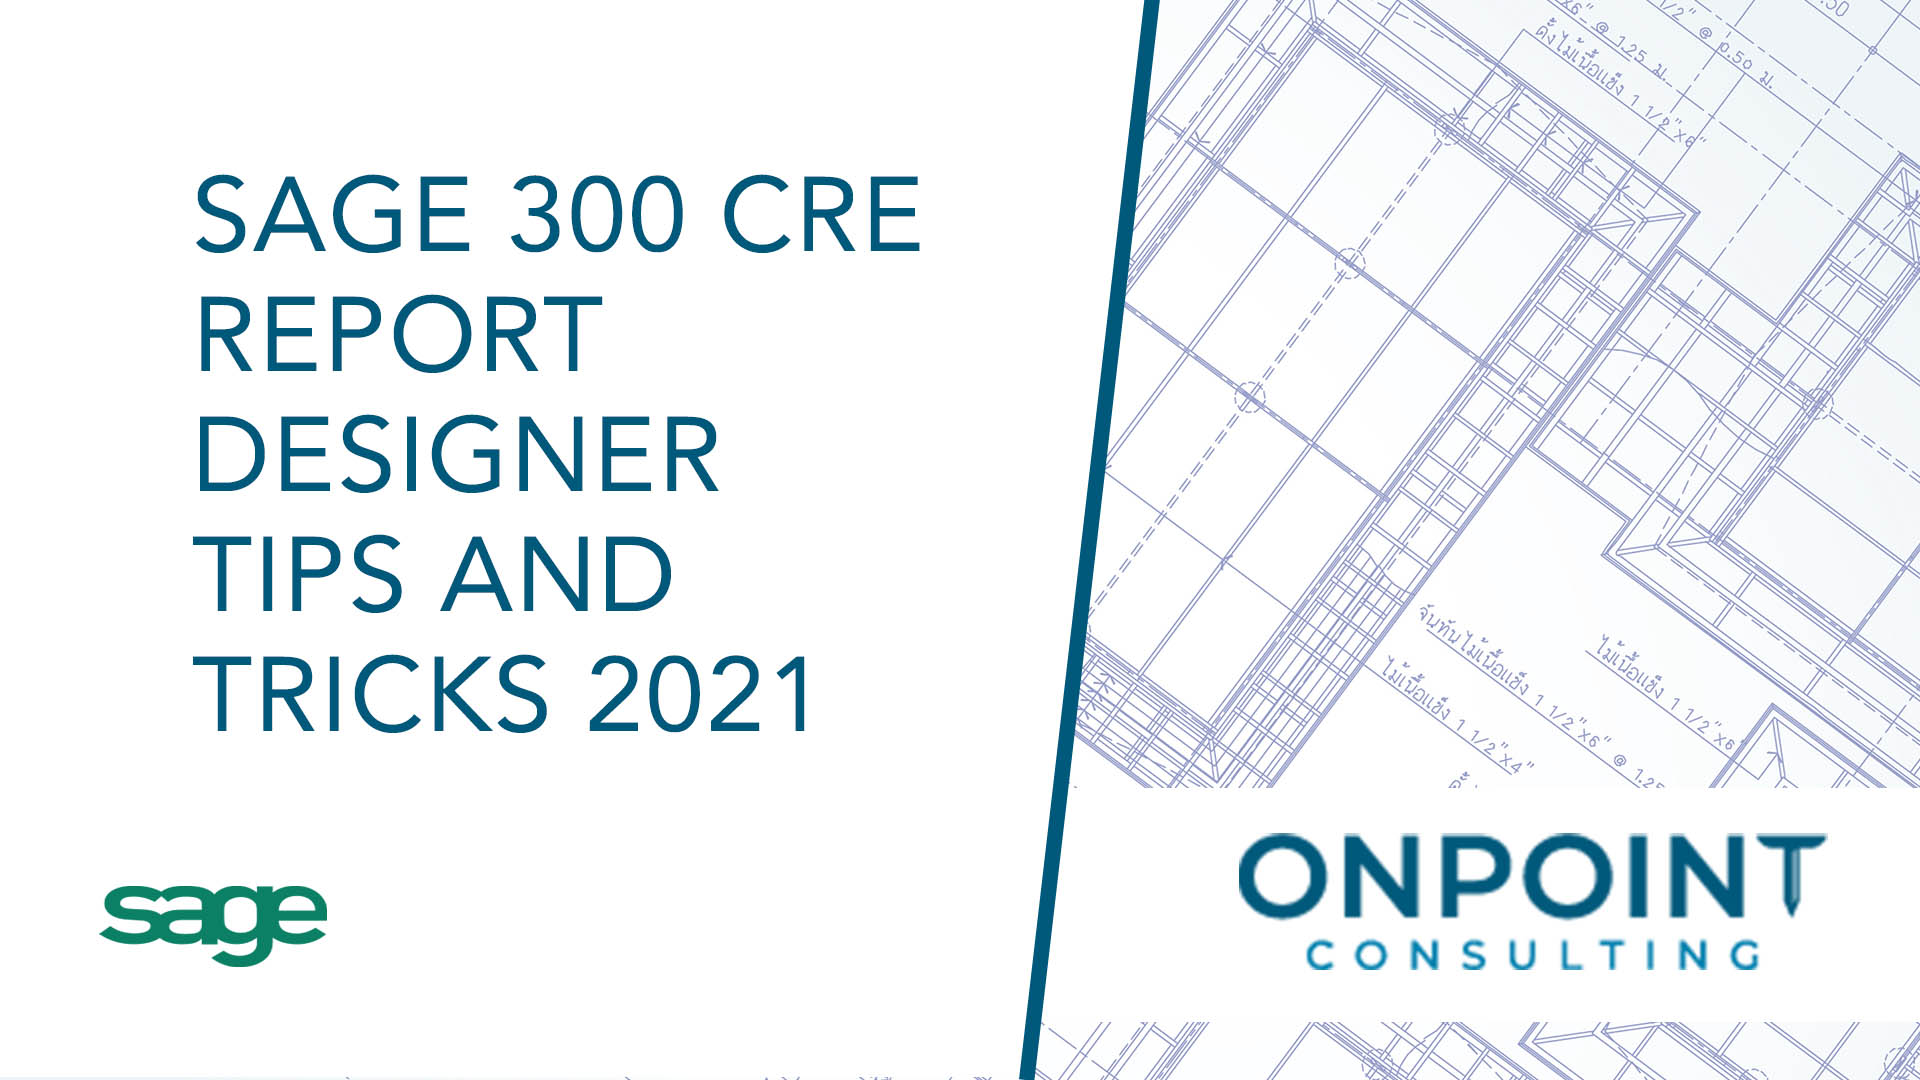 Sage 300 CRE Report Designer Tips and Tricks